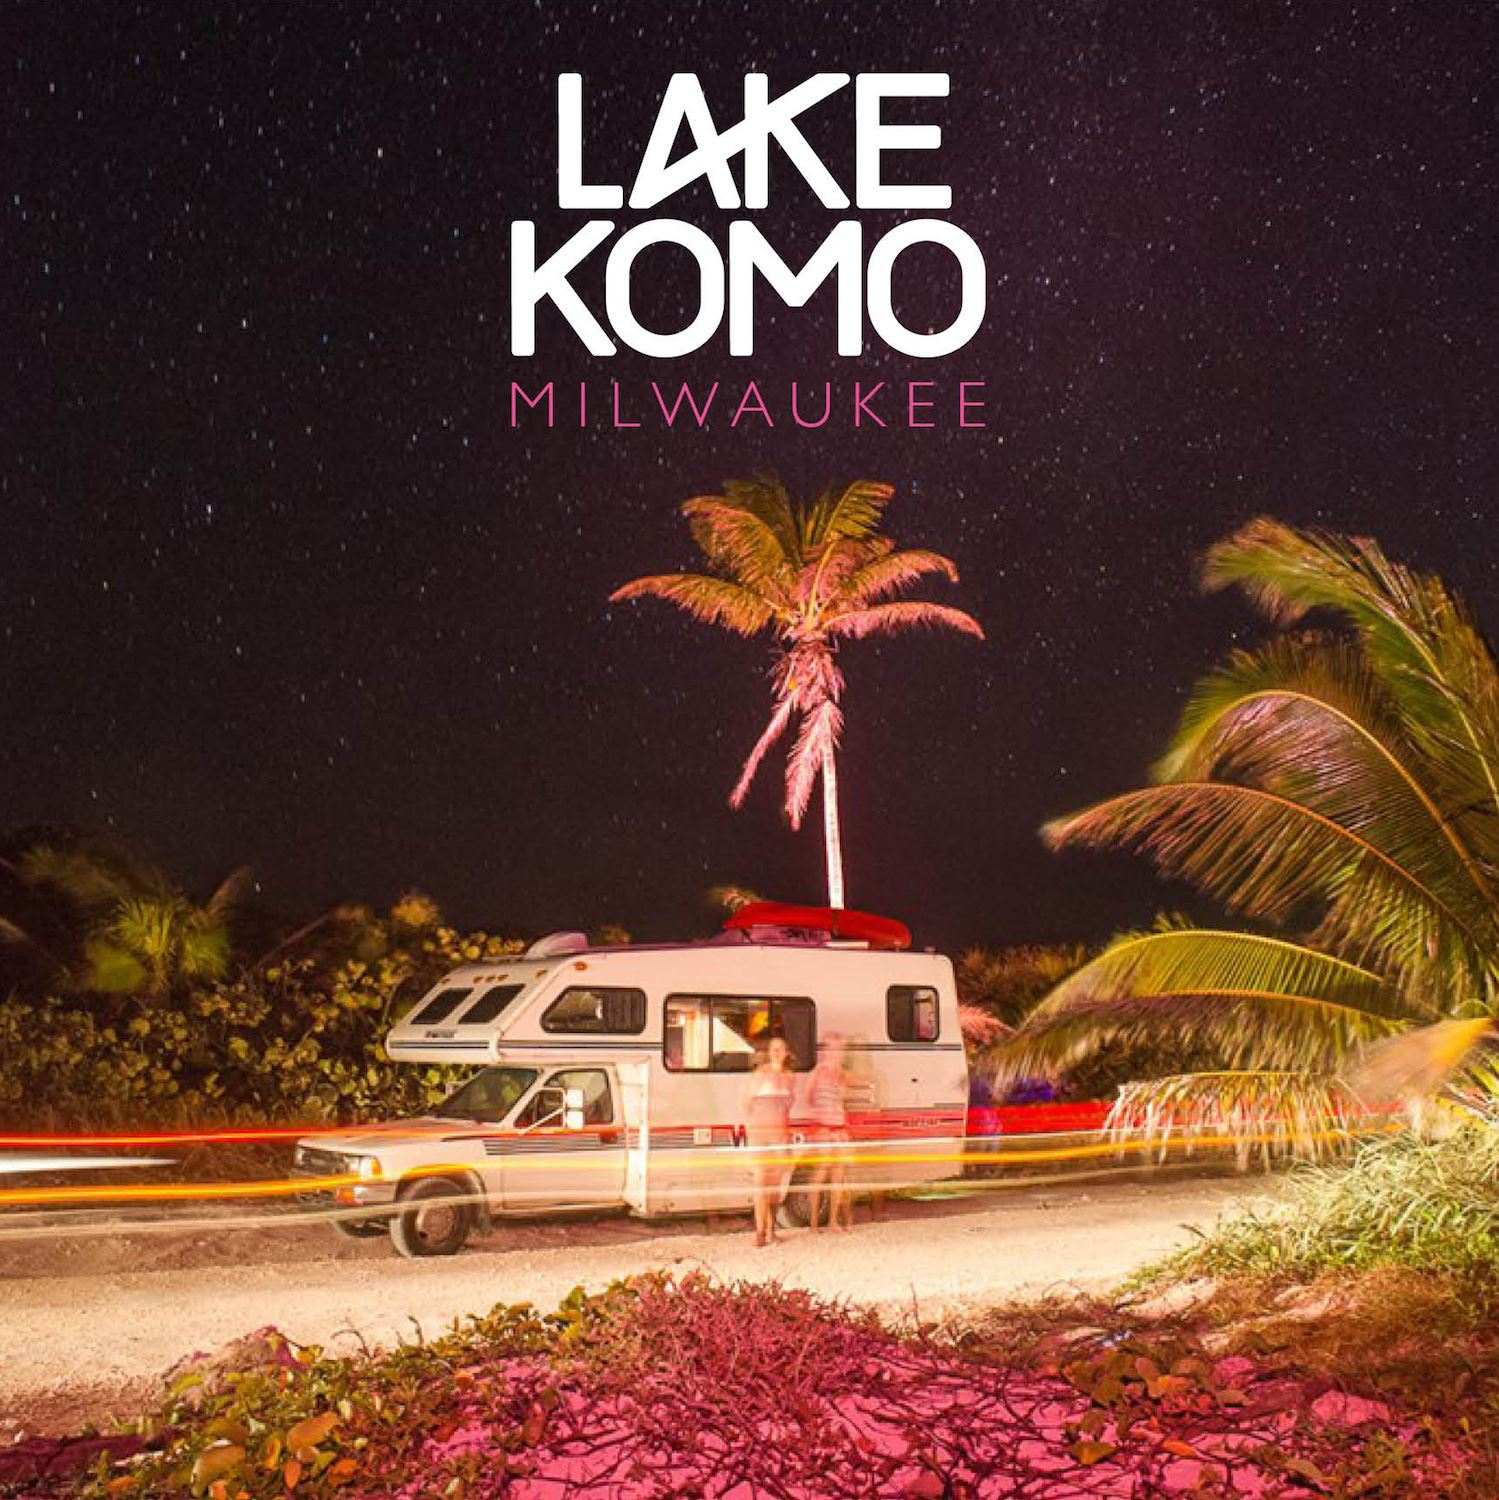 Lake Komo - Milwaukee